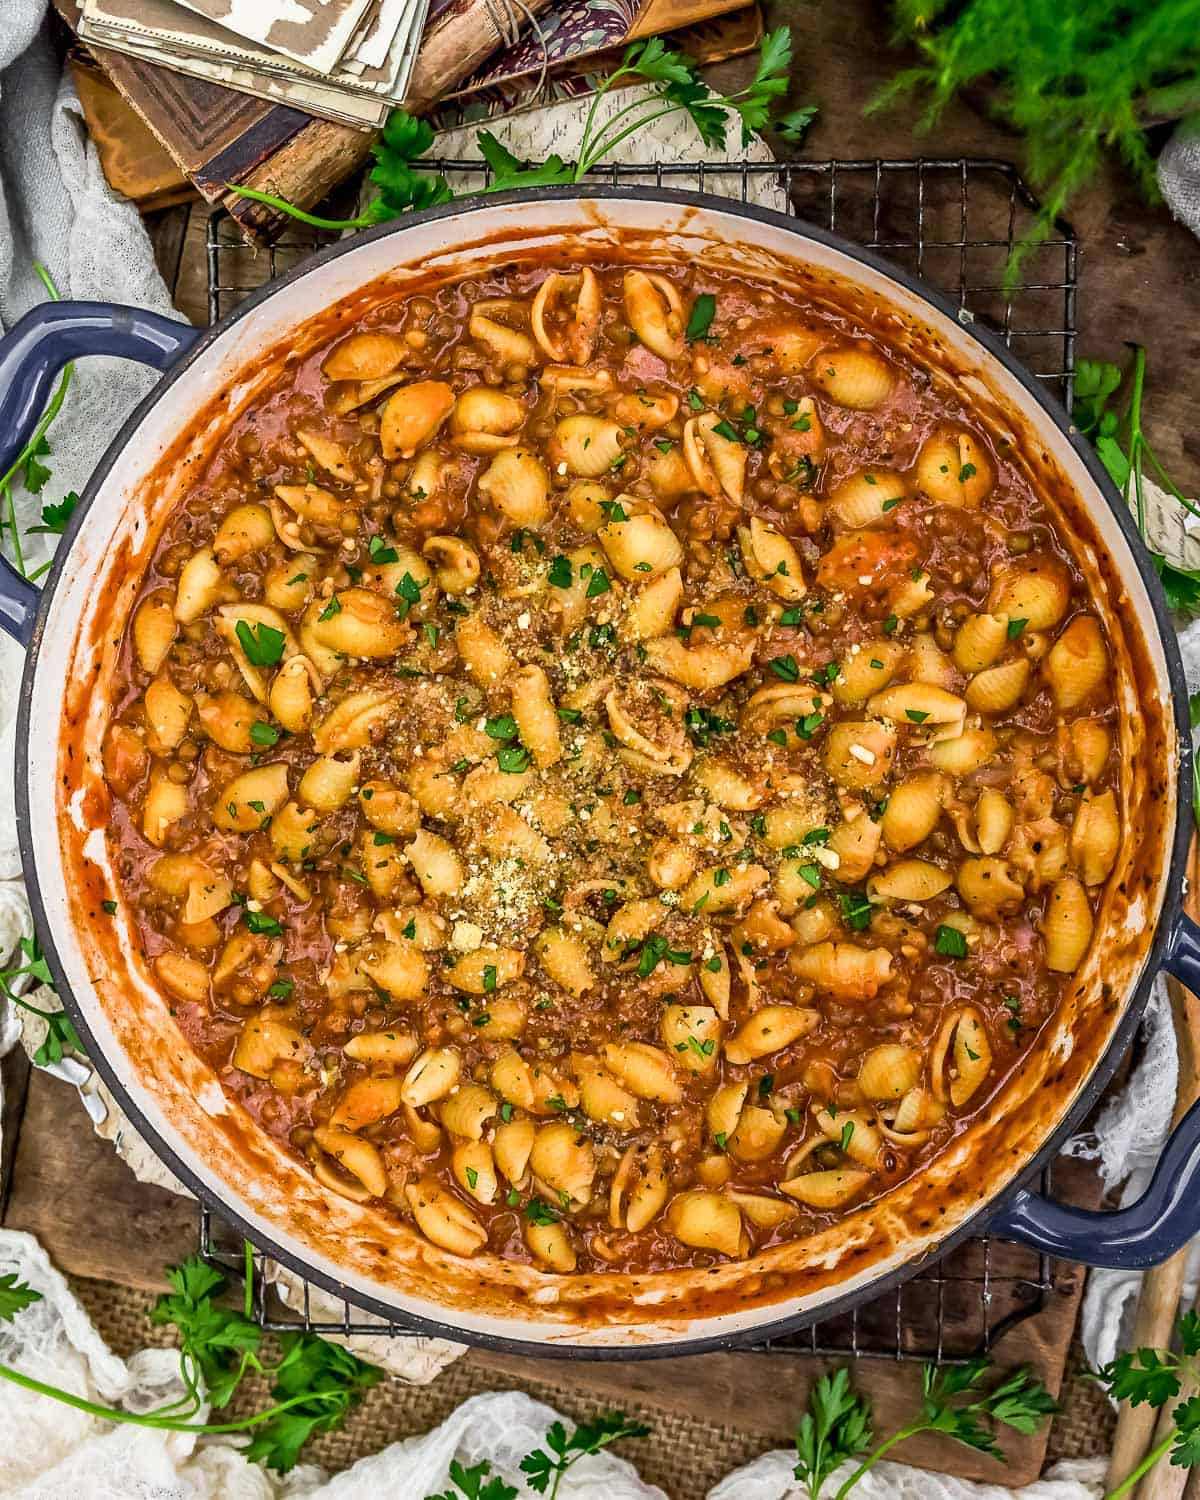 Skillet of Creamy Lentils and Shells